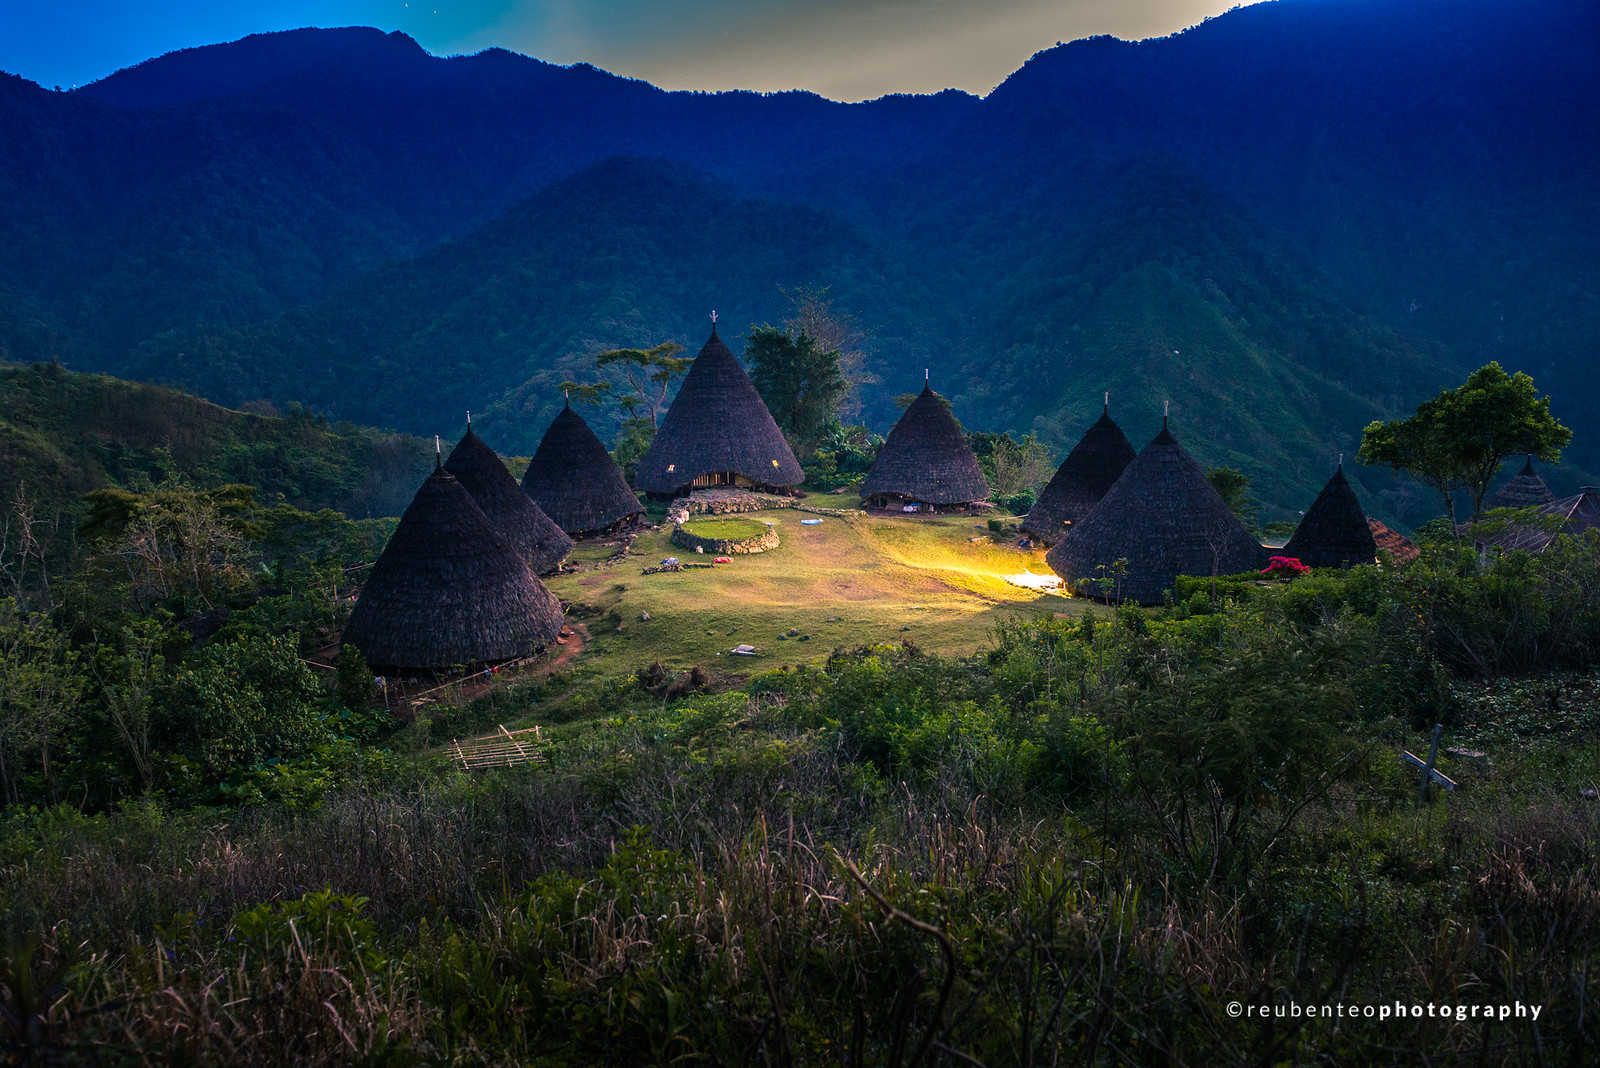 Sunrise at Wae Rebo Village, Flores